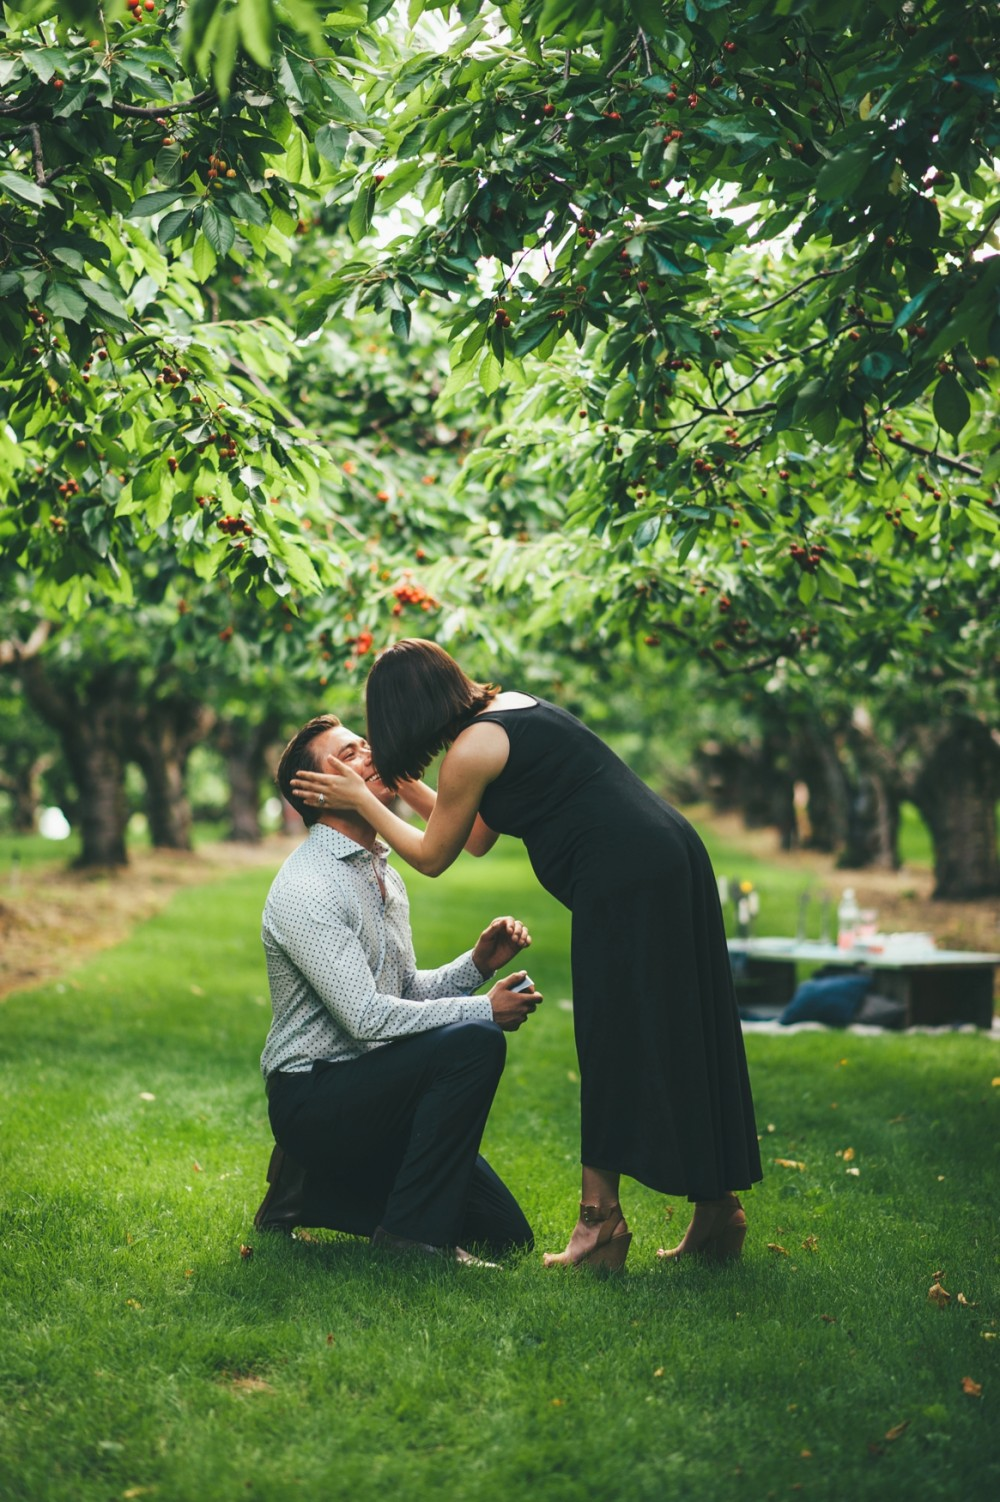 Image 10 of Surprise Proposal during Maternity Shoot